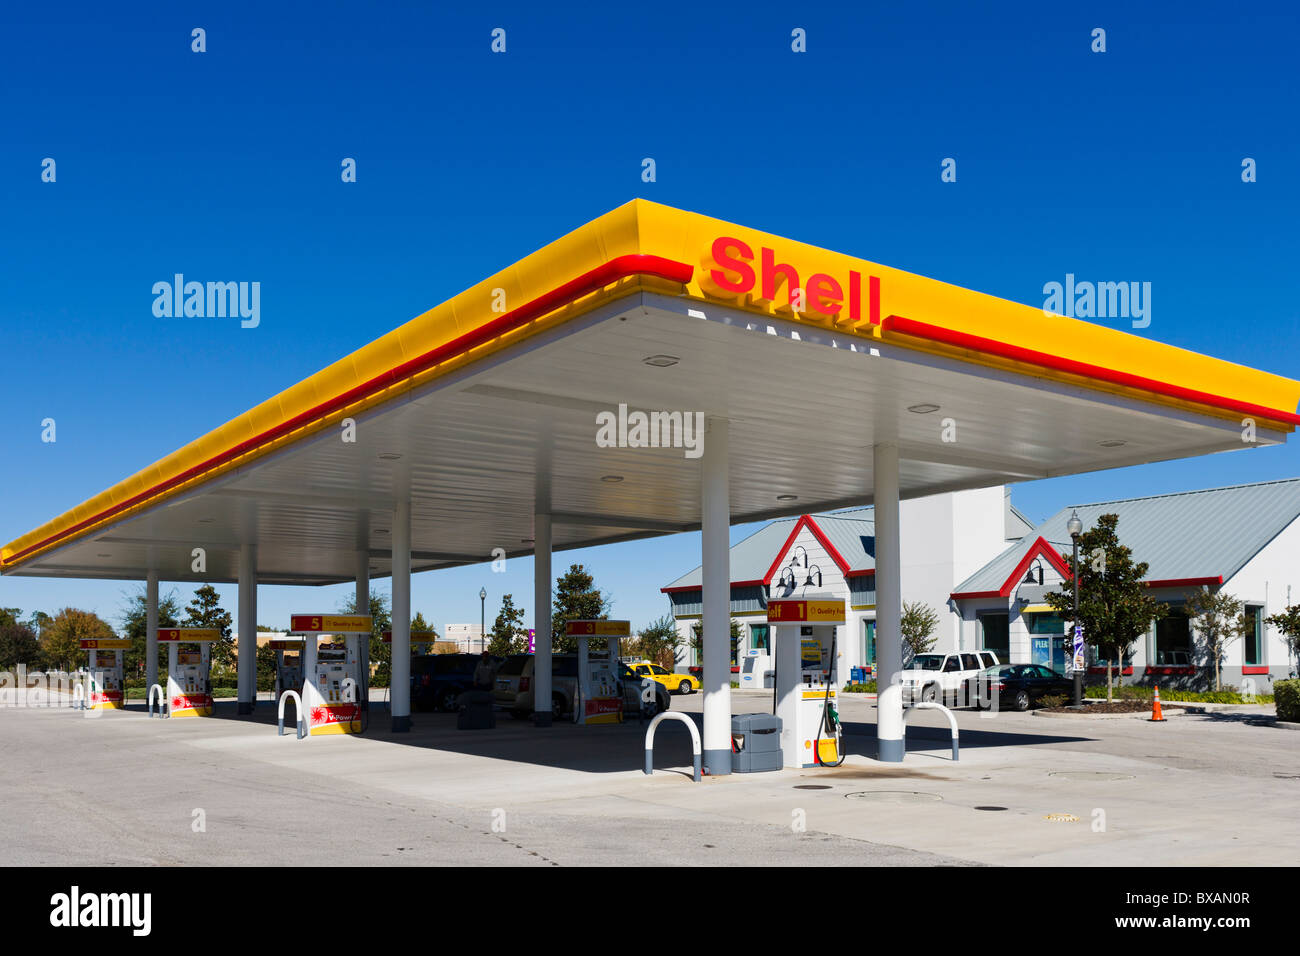 Shell gas station, Haines City, Central Florida, USA - Stock Image